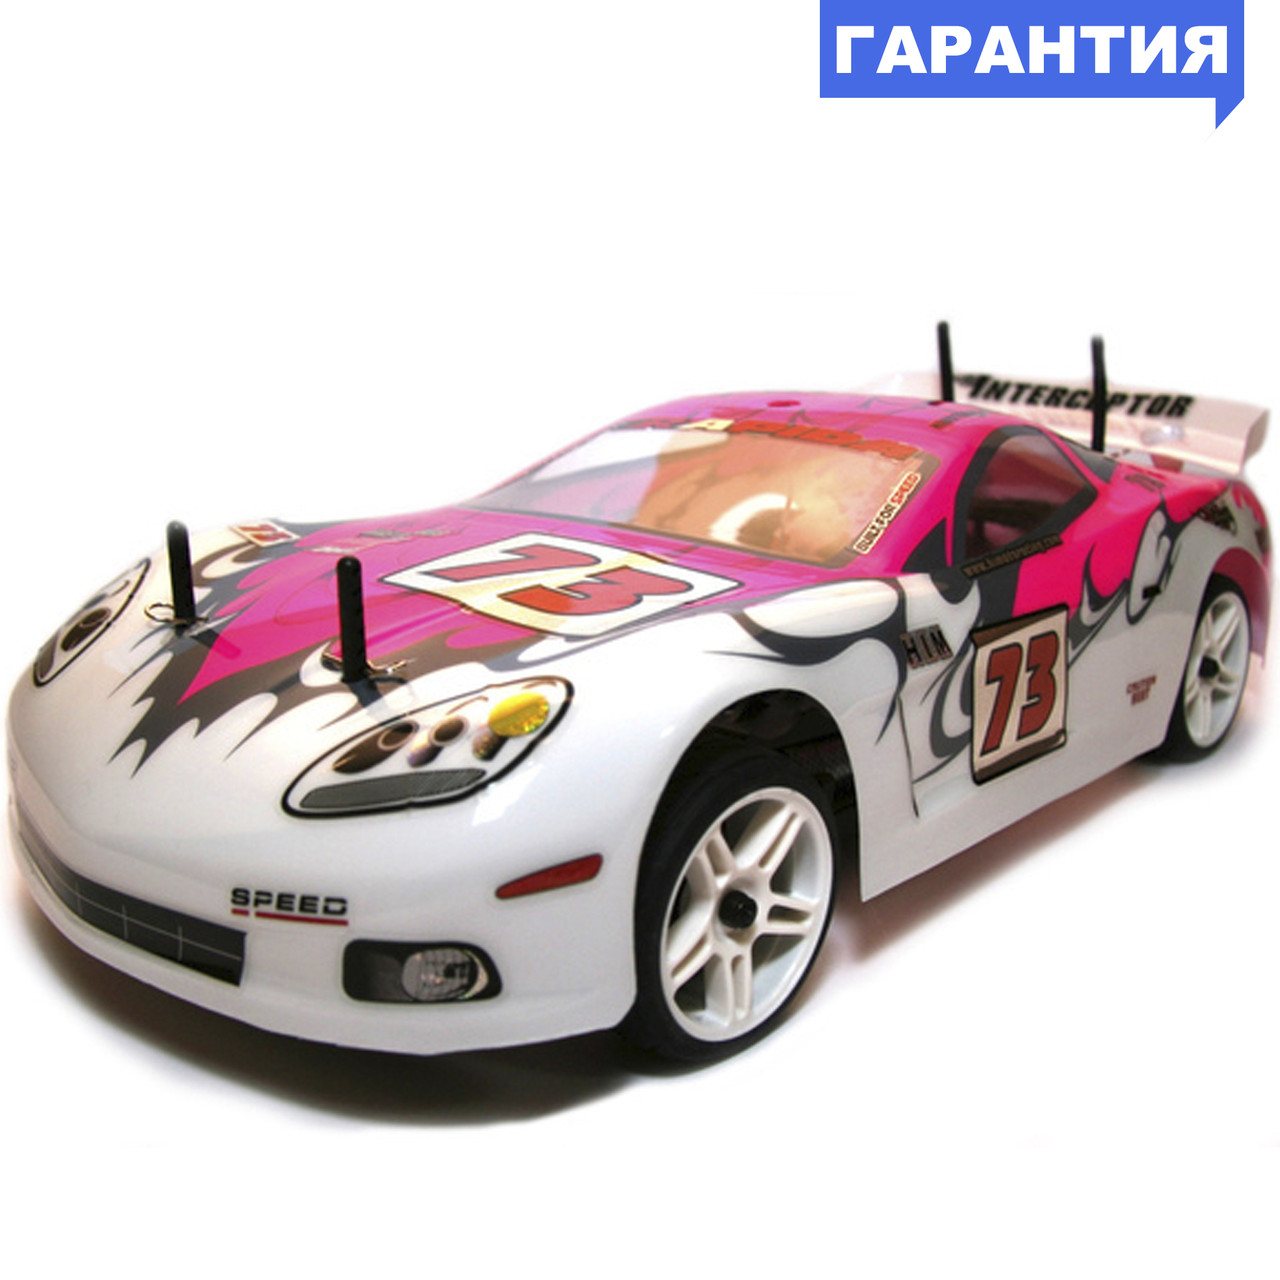 Шоссейная 1:10 Himoto NASCADA HI5101 Brushed (розовый)